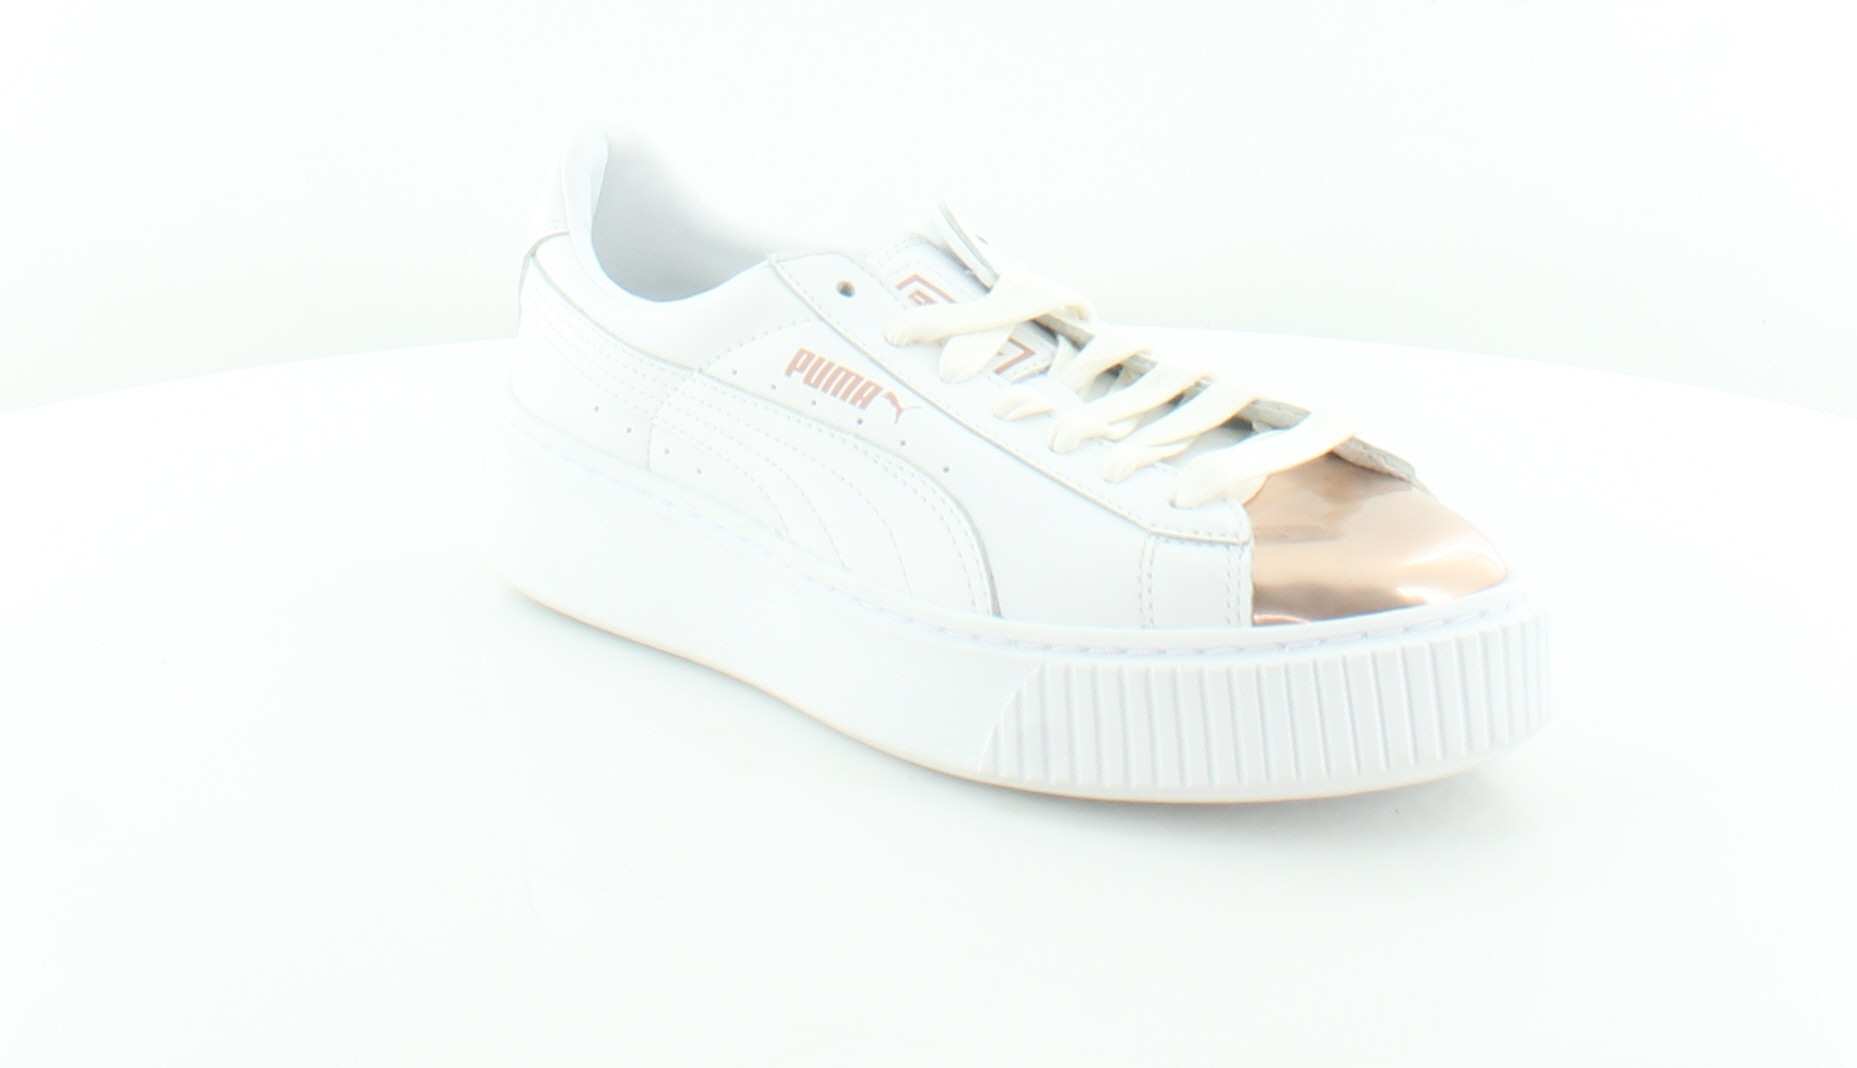 d0097e62d34 Puma Basket Platform White Womens Shoes Size 6.5 M Fashion Sneakers MSRP   100